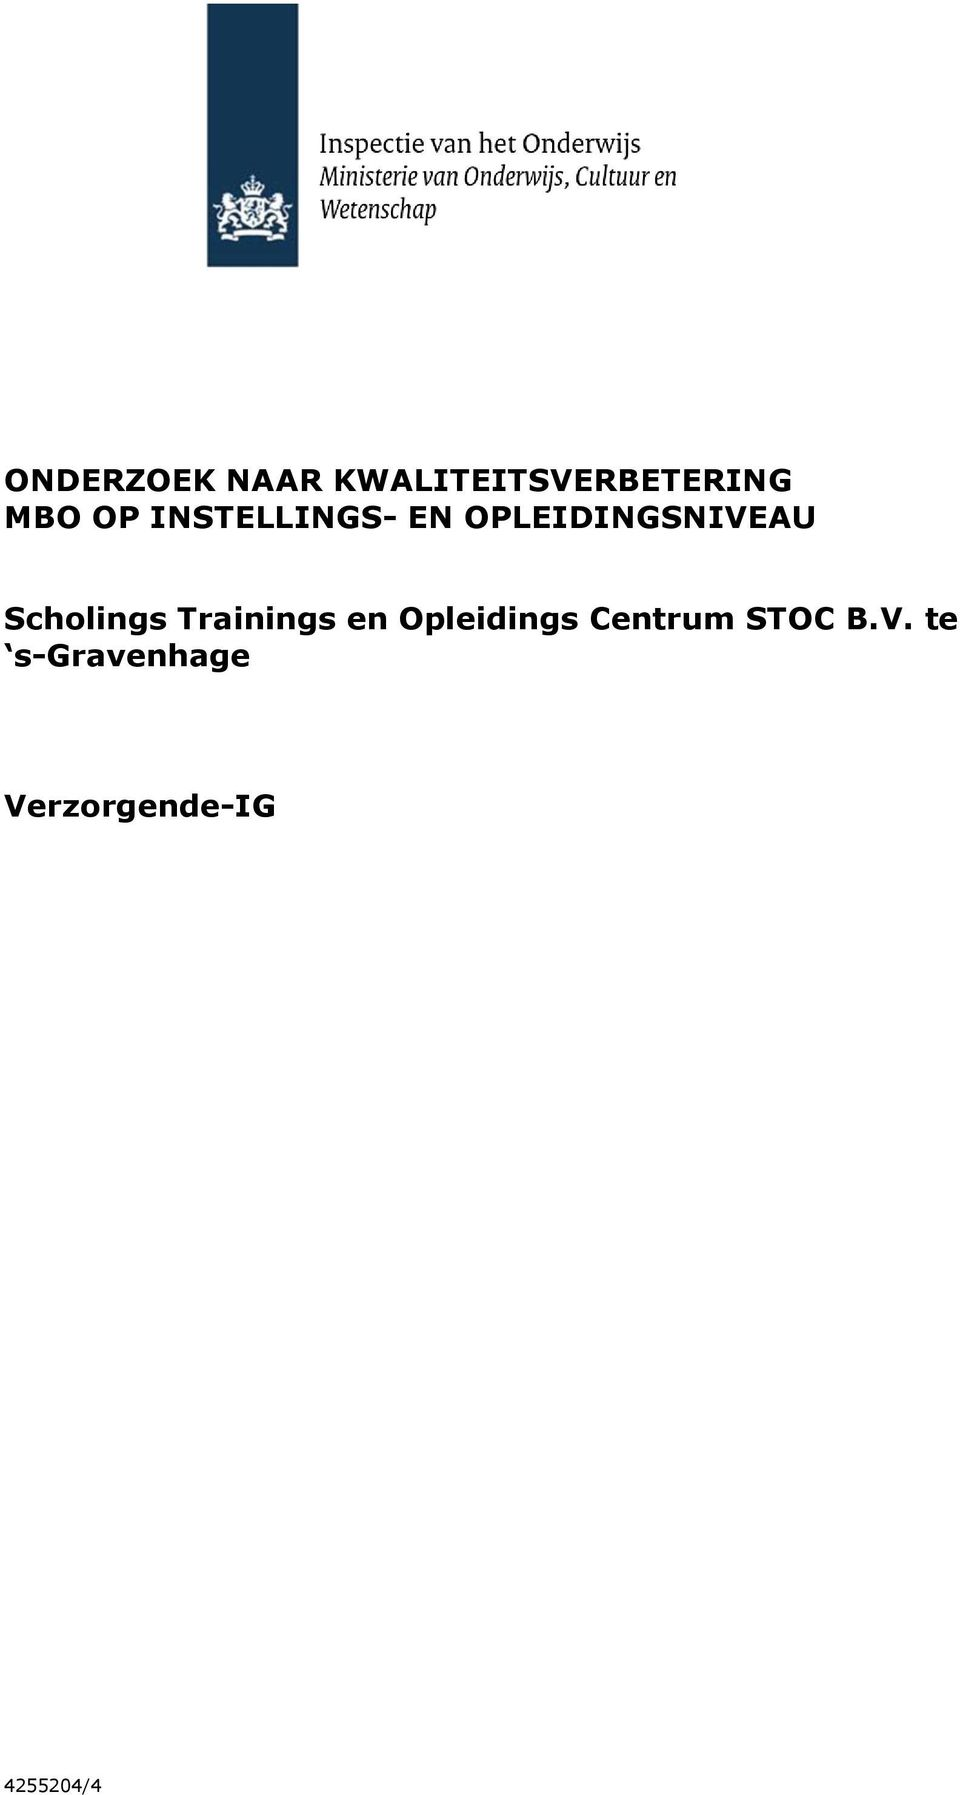 Scholings Trainings en Opleidings Centrum